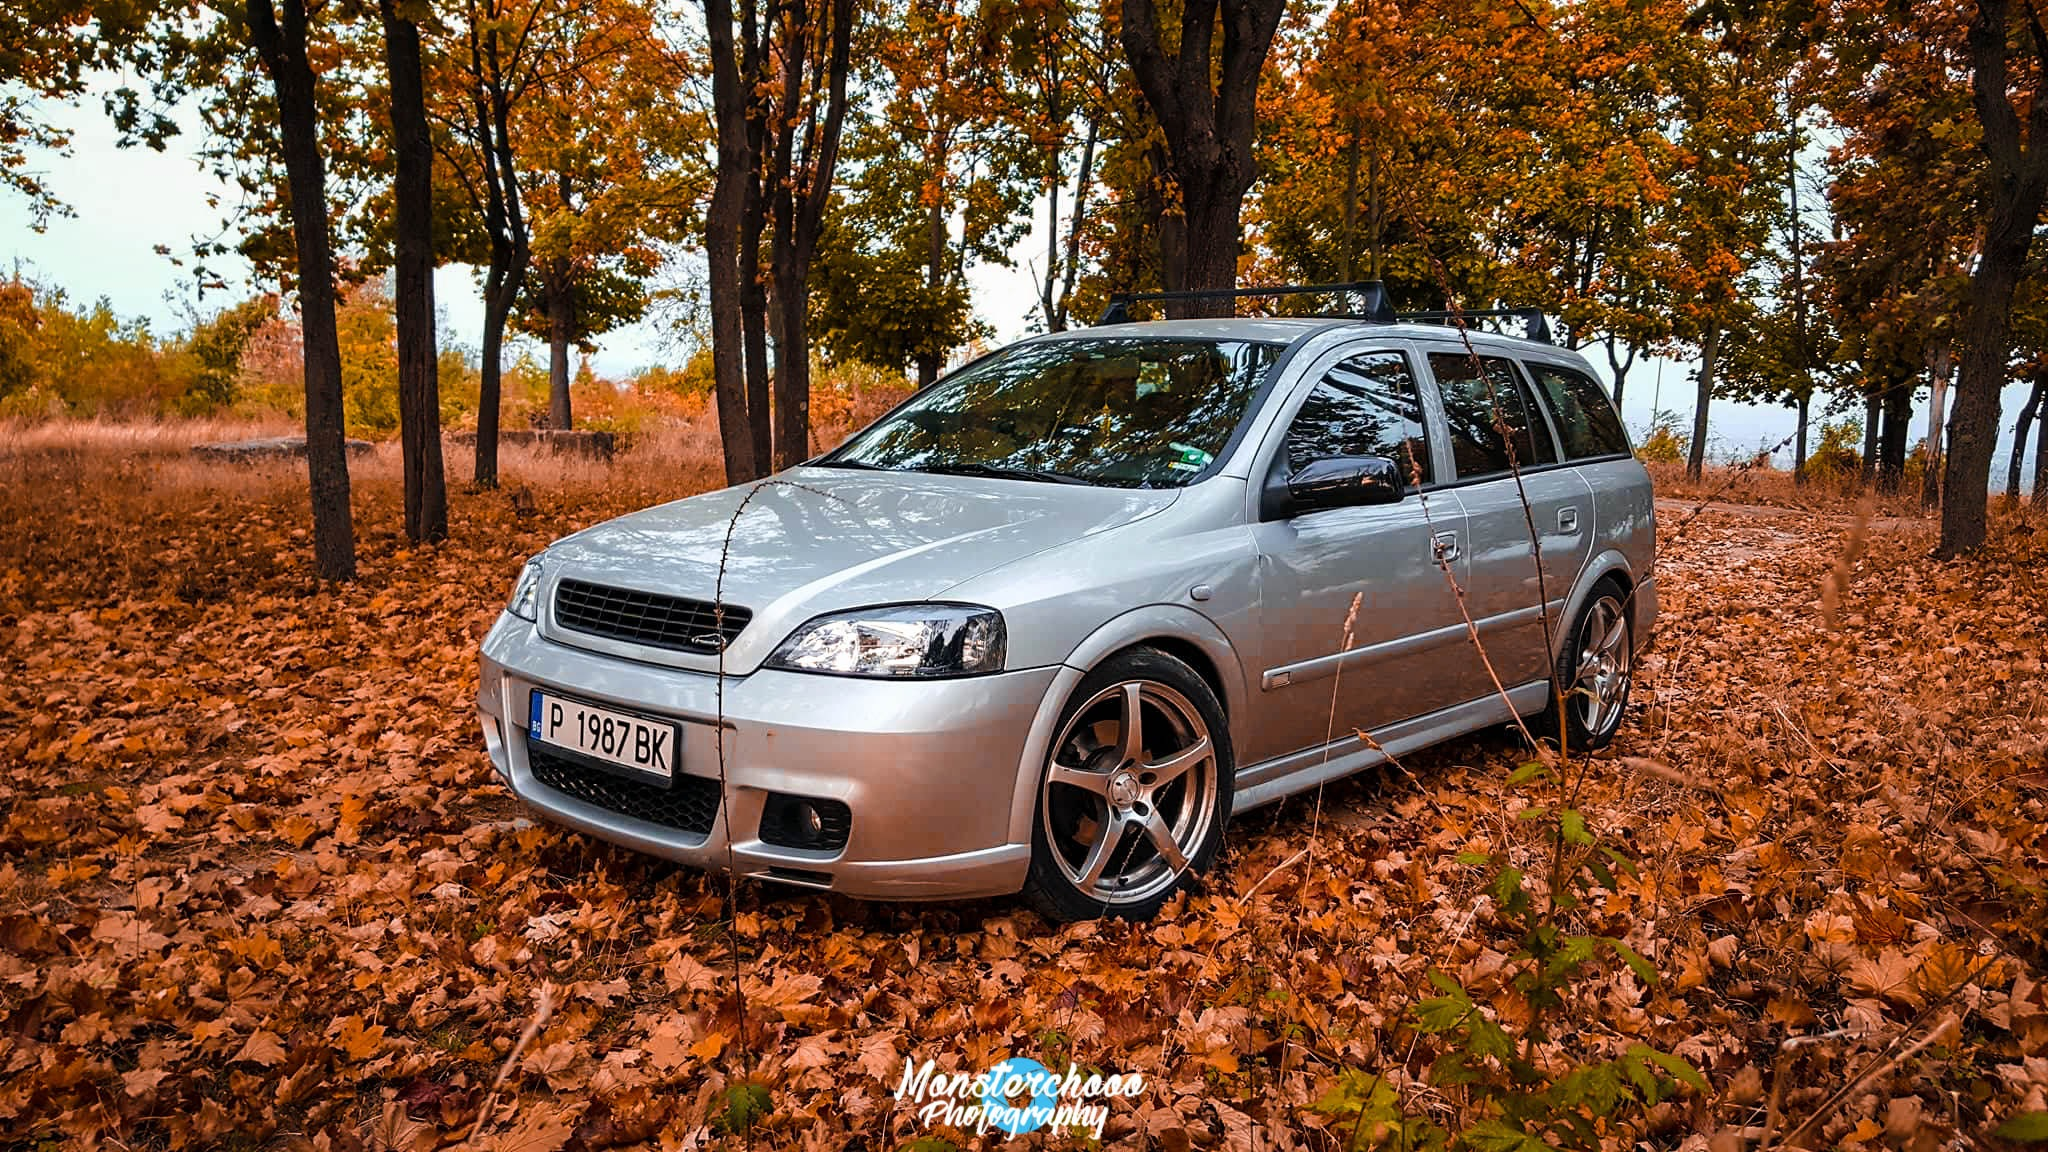 Opel Autumn by Photography by Monsterchooo